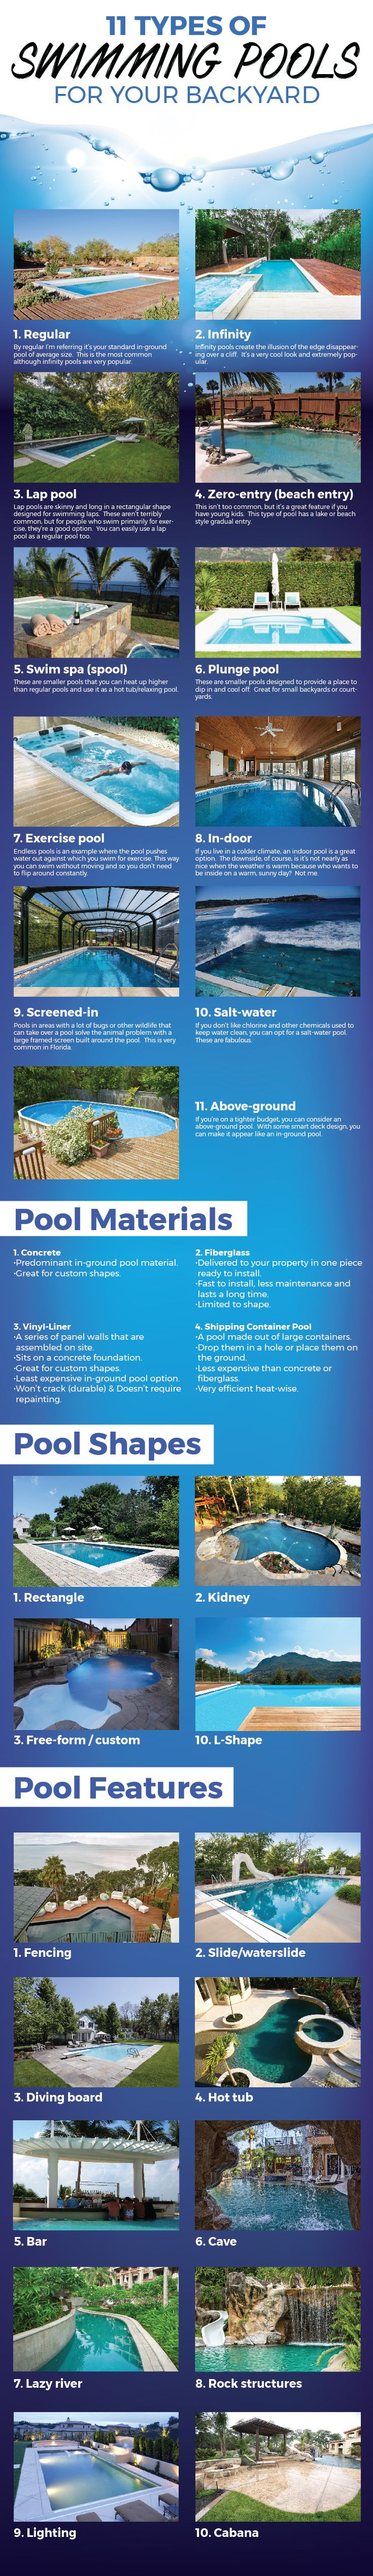 355 best images about swimming pool ideas on pinterest for Types of swimming pools